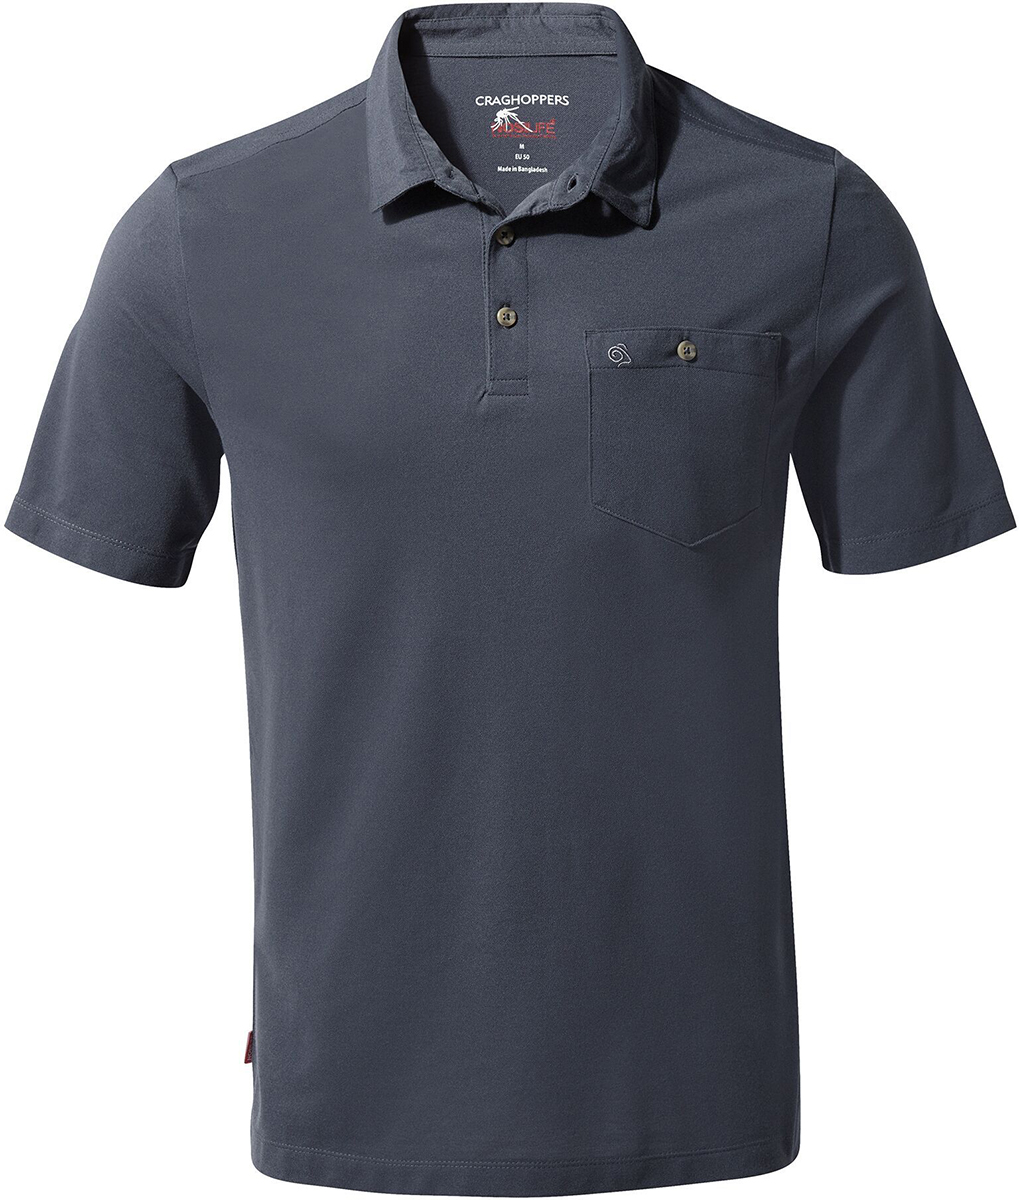 Craghoppers NosiLife Gilles Short Sleeved Polo | Jerseys